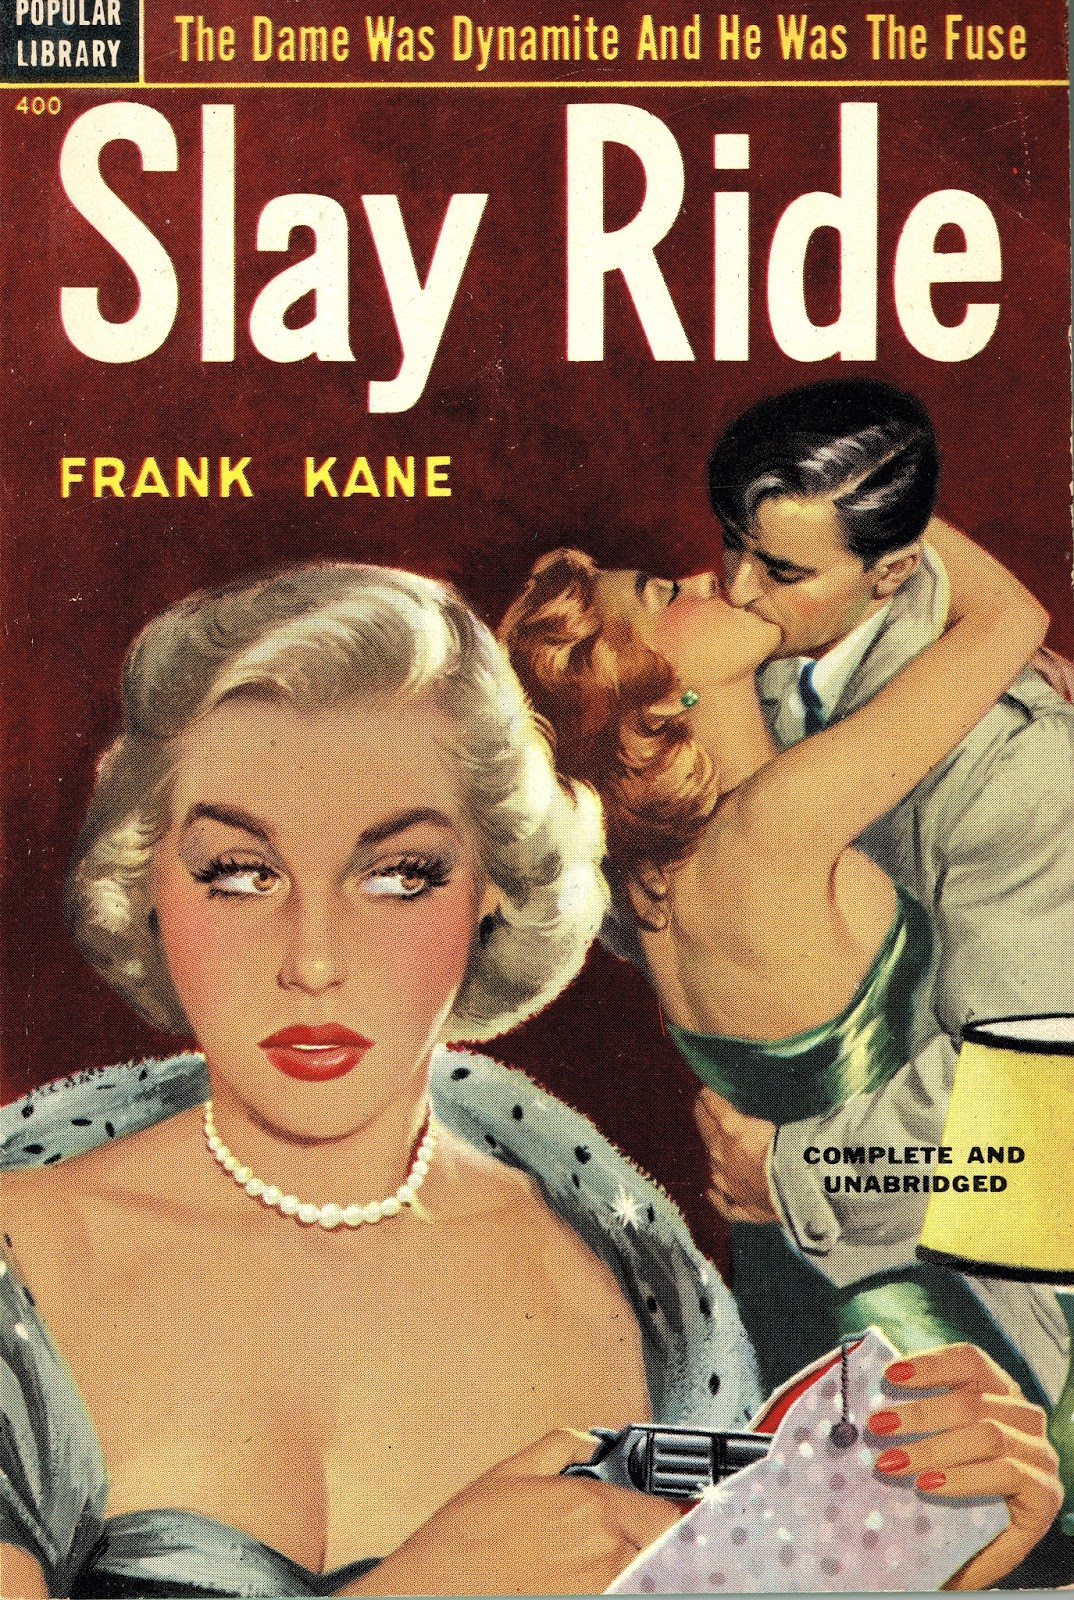 Slay Ride, by Frank Kane (Popular Library, 1952).jpg